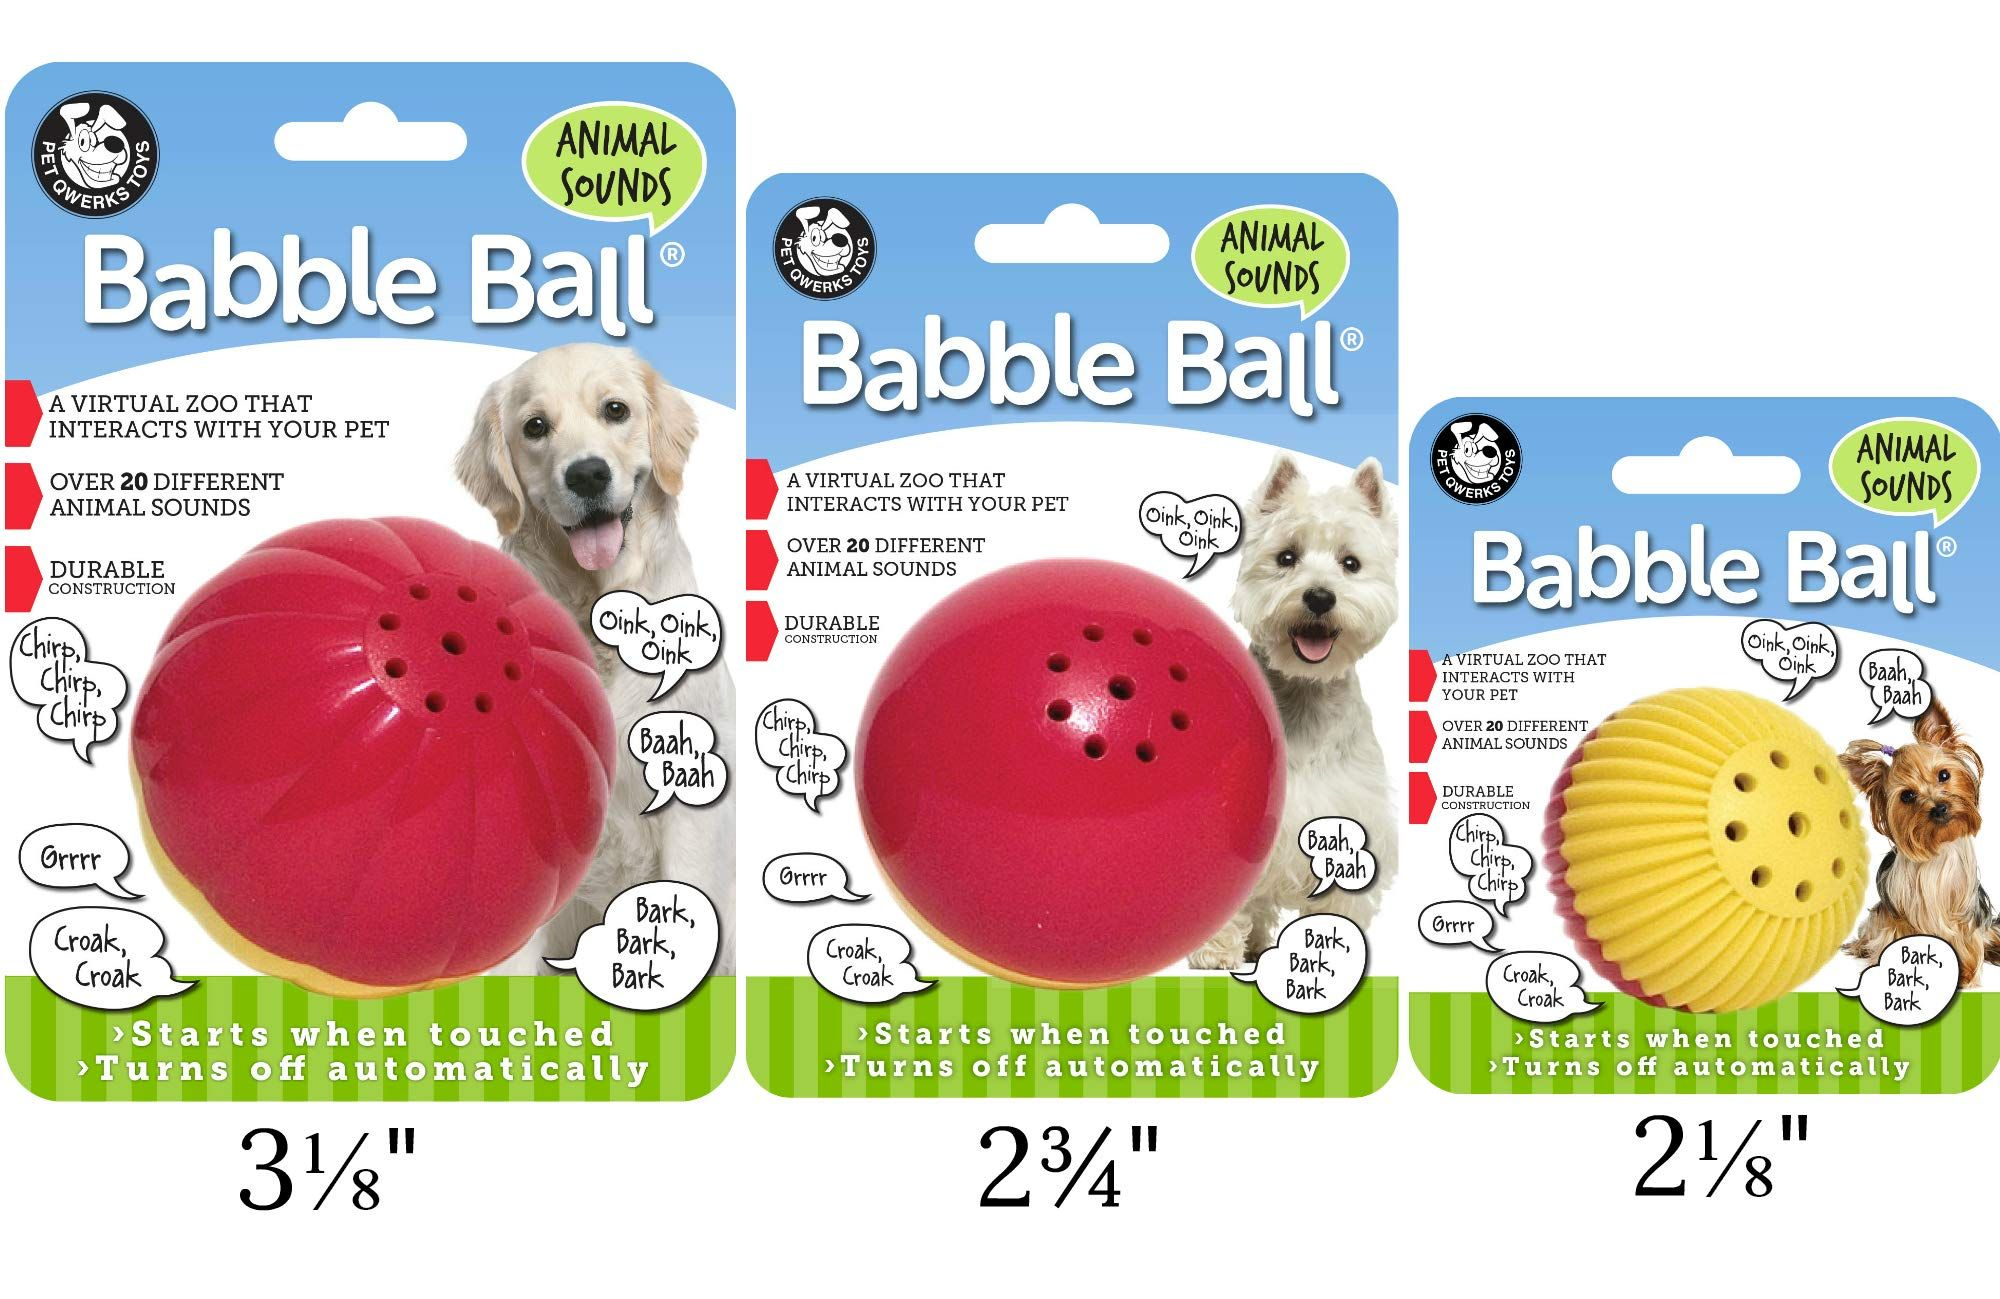 Pet Qwerks Animal Sounds Babble Ball Interactive Dog Toy Makes